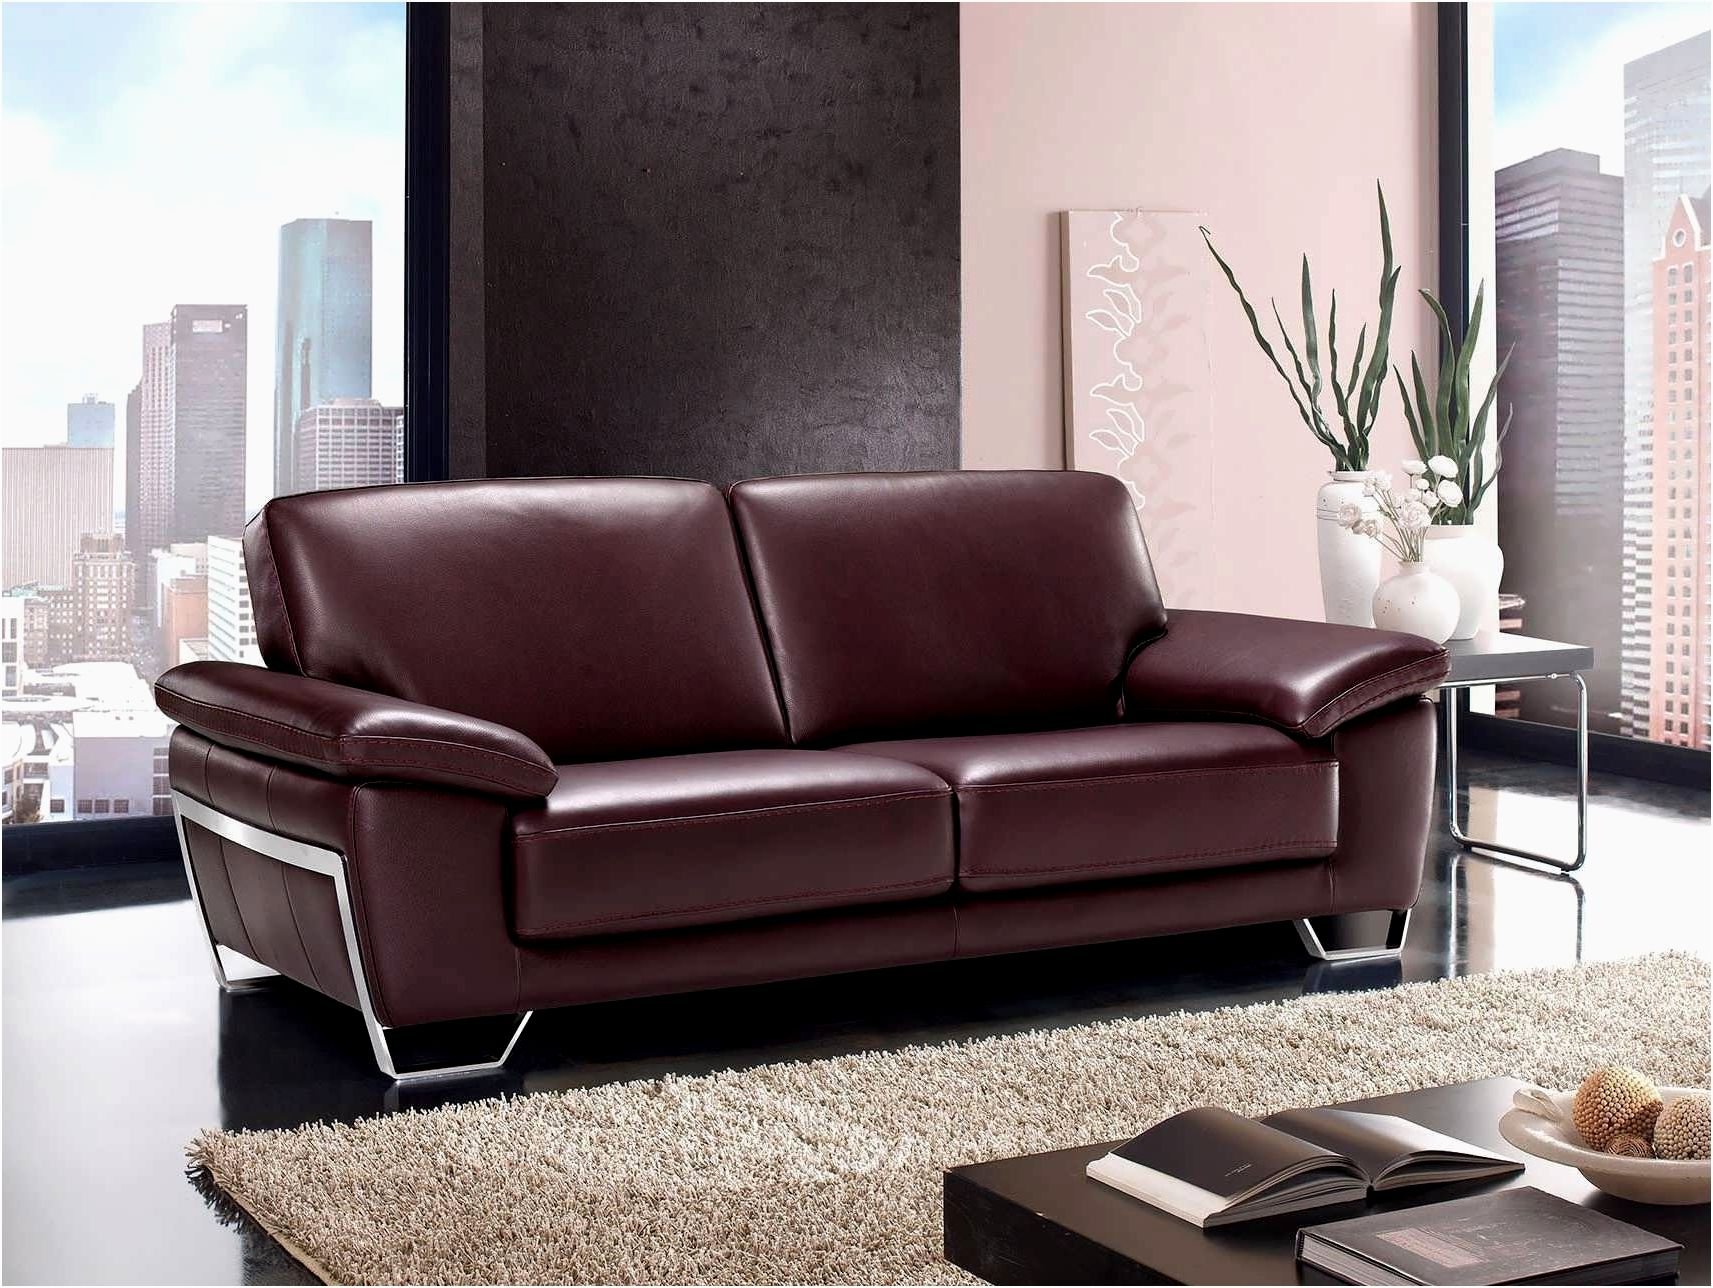 beautiful red leather sectional sofa photograph-Fresh Red Leather Sectional sofa Plan